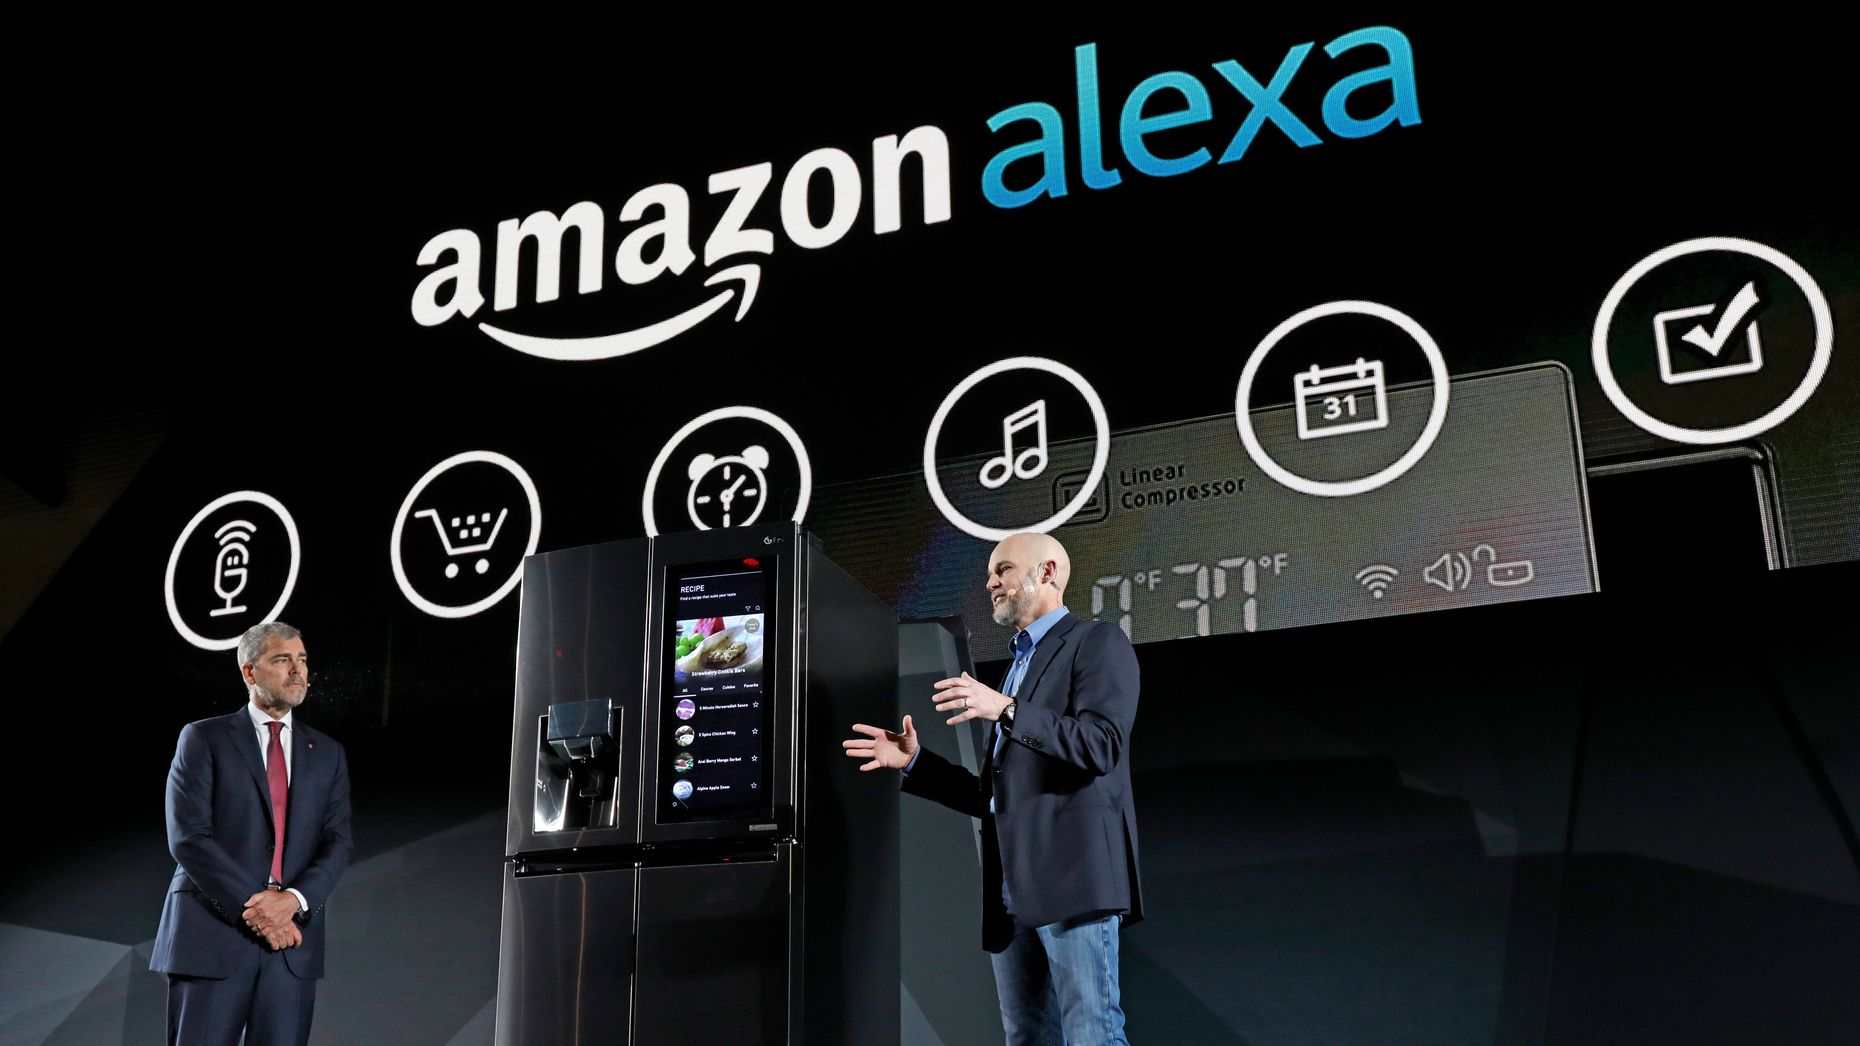 LG Electronics' vice president David VanderWaal and Amazon Echo vice president Mike George unveiling an LG fridge equipped with Amazon Alexa at CES in January. Photo by AP